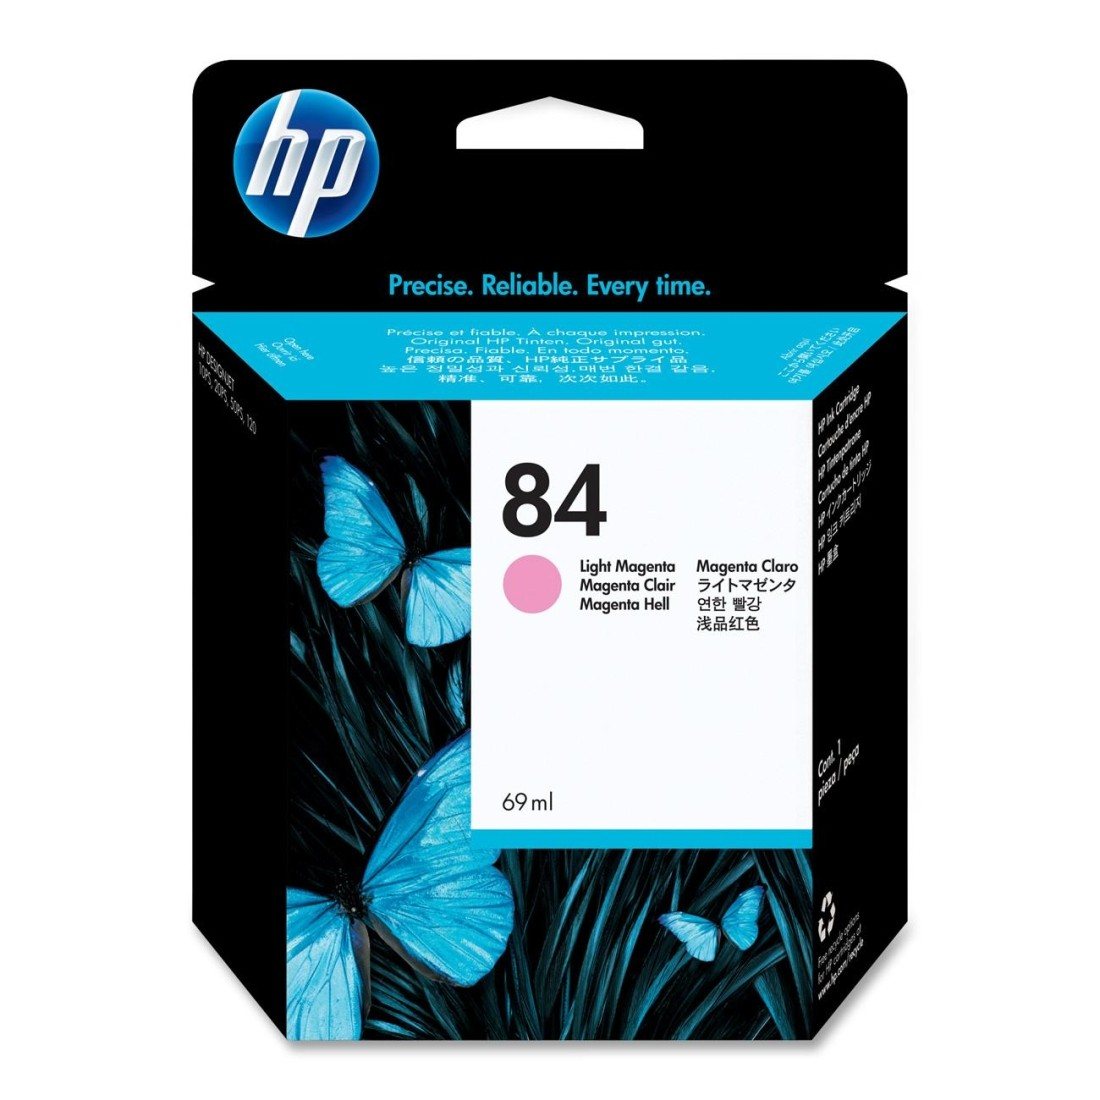 Hp C5018A  cartuccia magenta chiara, capacit�  69ml